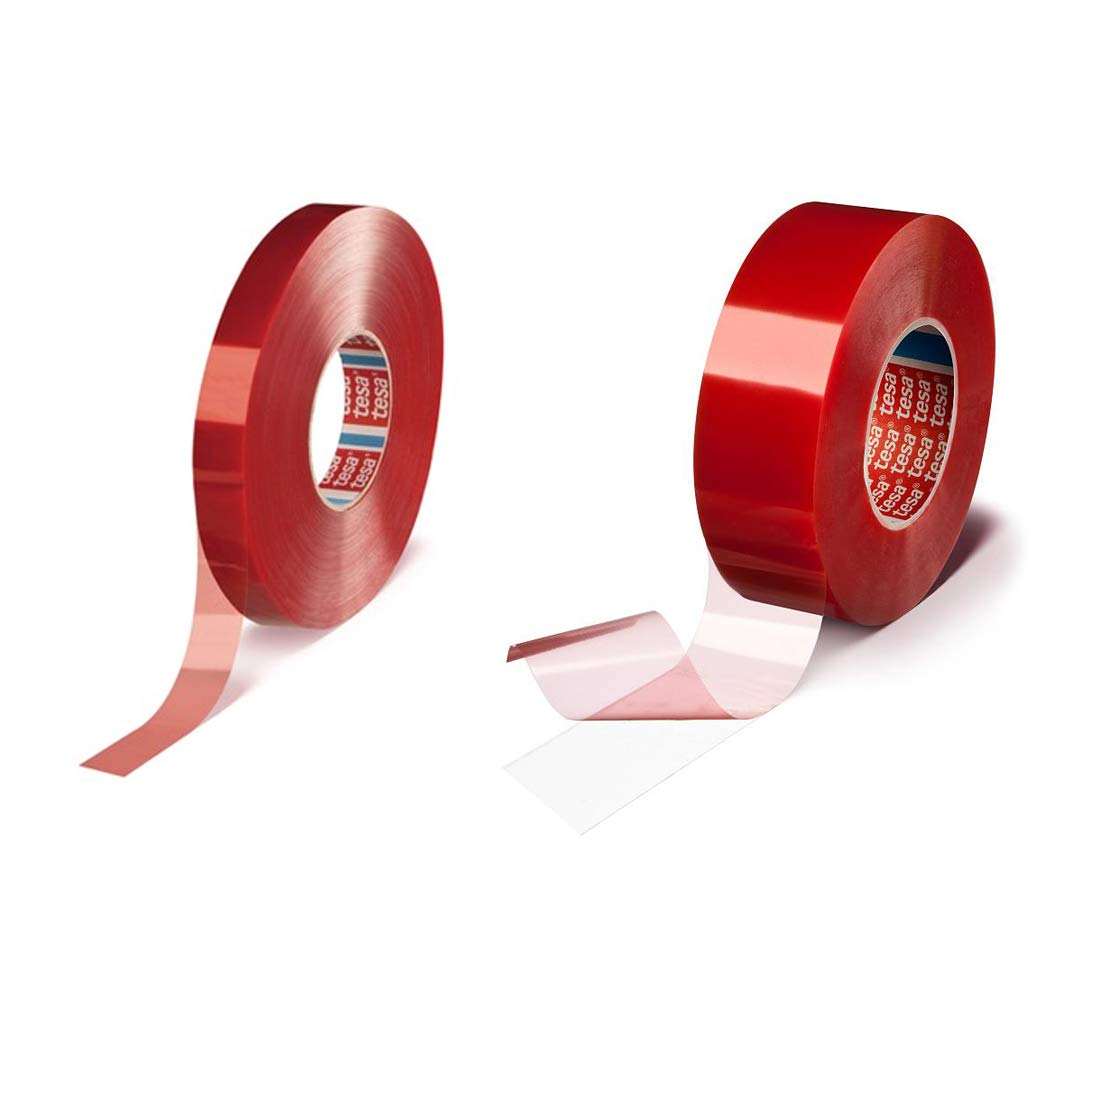 tesa 4965 Double Coated Polyester Film Tape: 3/4 in. x 60 yds. (Clear)